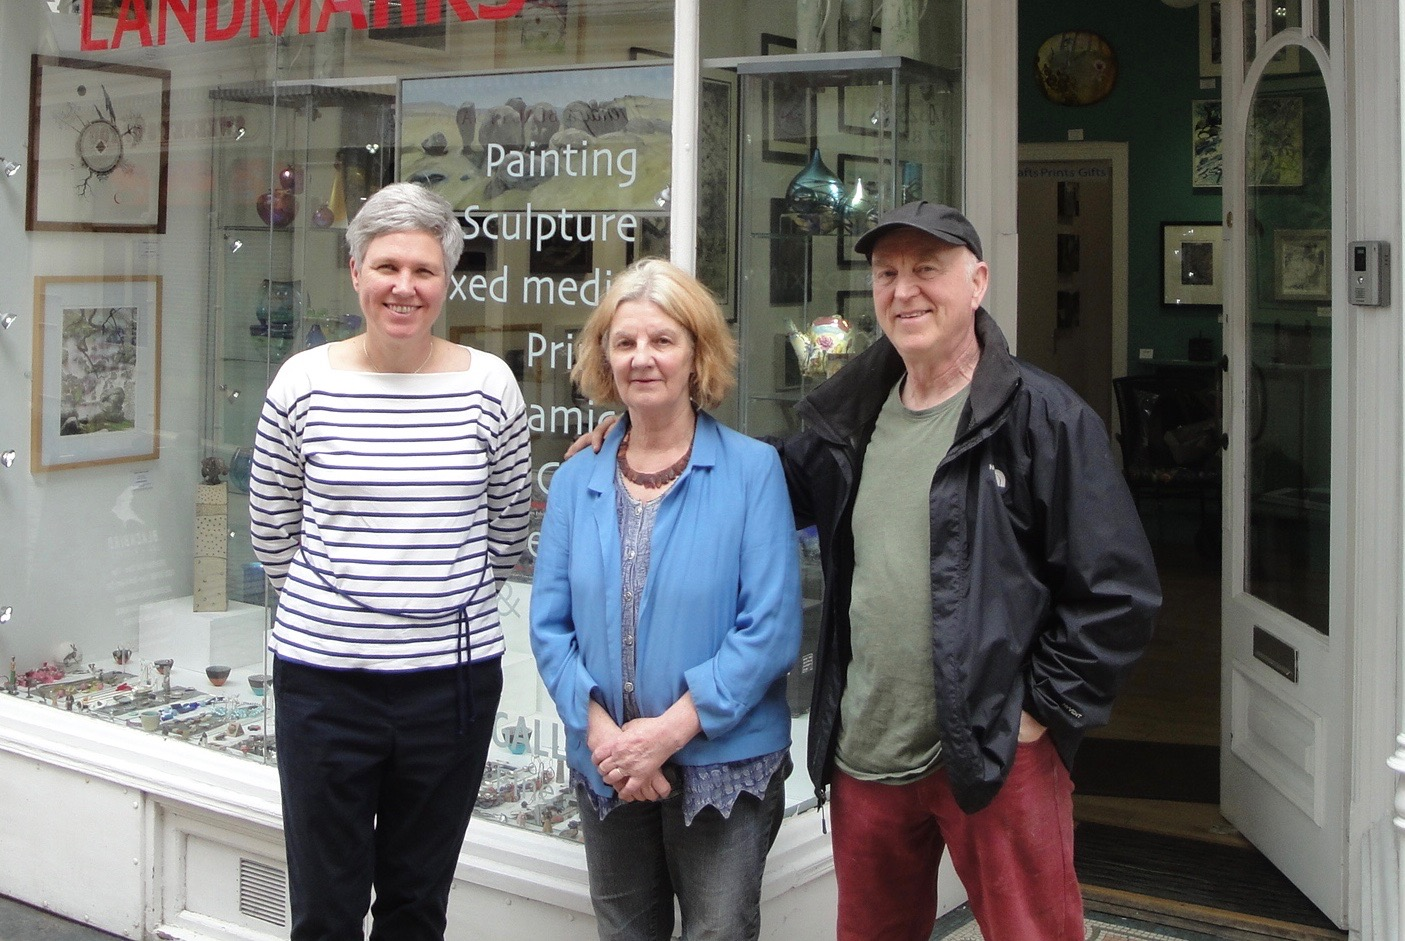 Sarah Moss (left) with Rosemary and Mike Holcroft, who run the Water Street Gallery in Todmorden